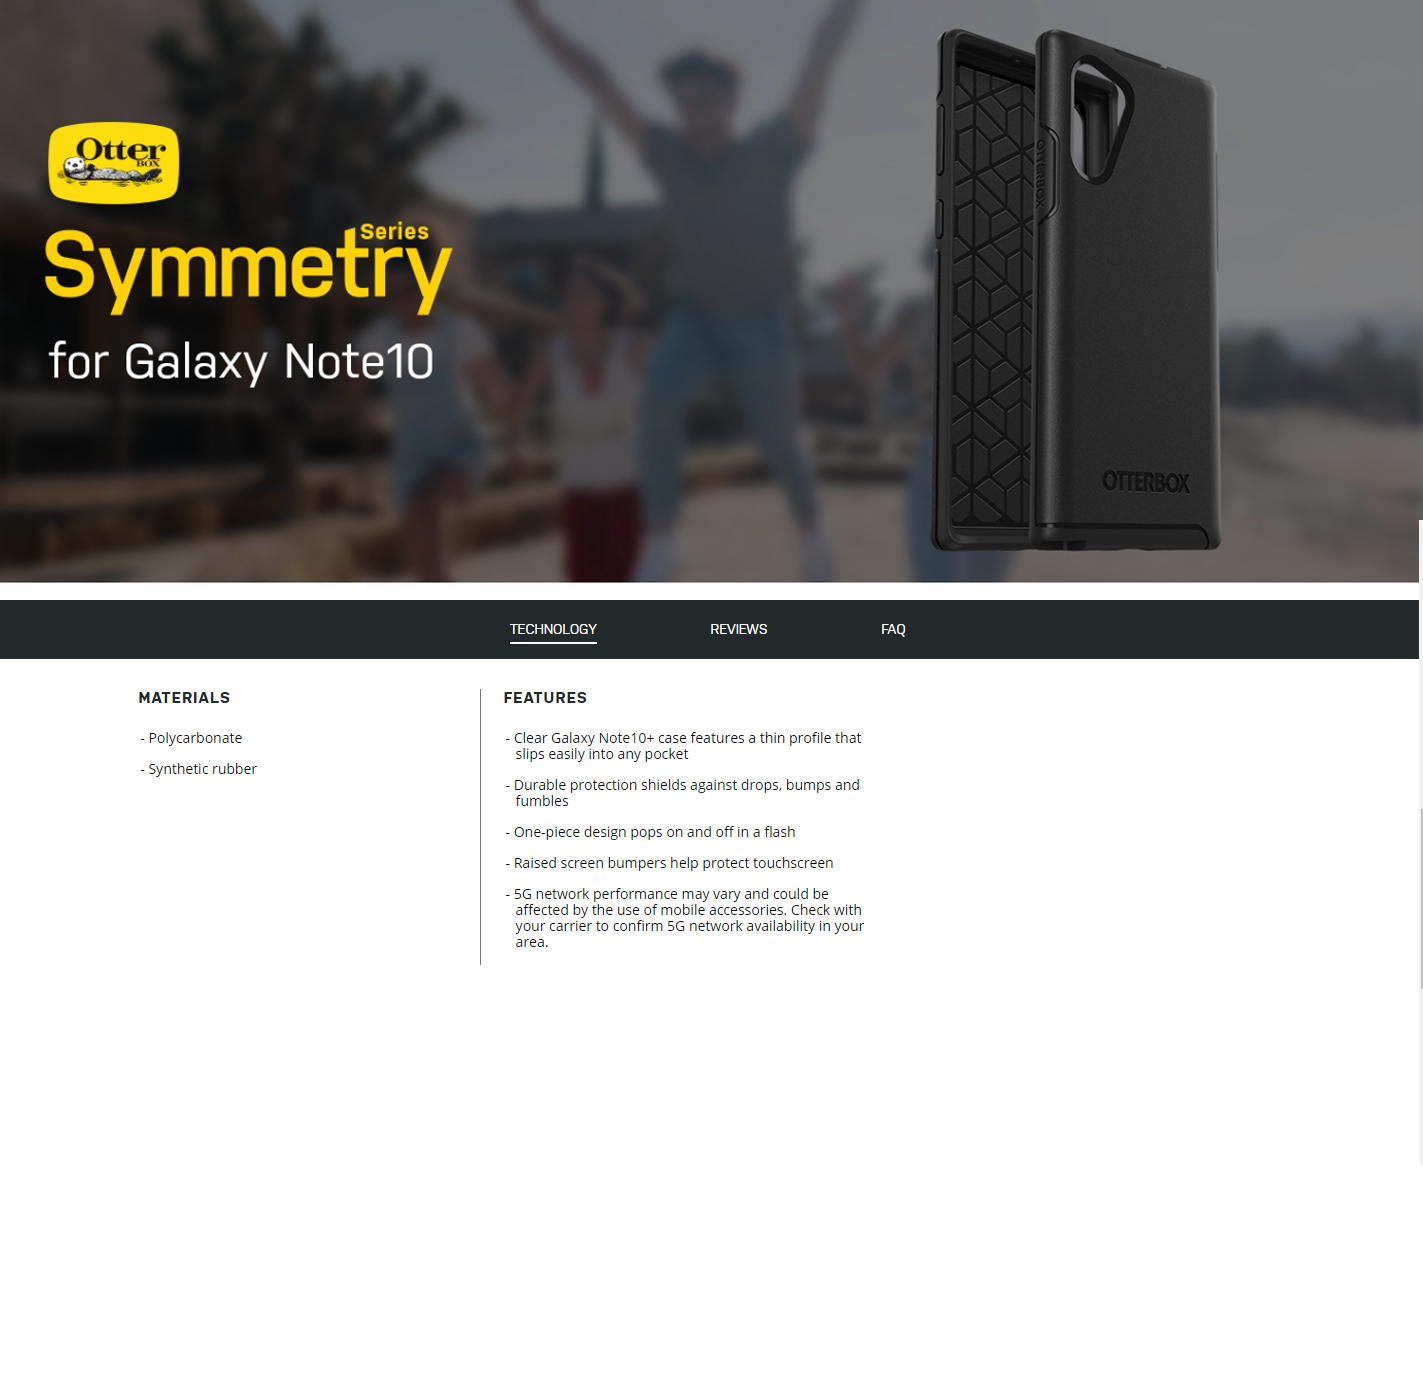 /Otterbox/660543524663/1-DES-fx-otterbox-symmetry-clear-samsung-galaxy-note-10-clear-color-660543524663-forexengineer--malaysia-authorised-retailer